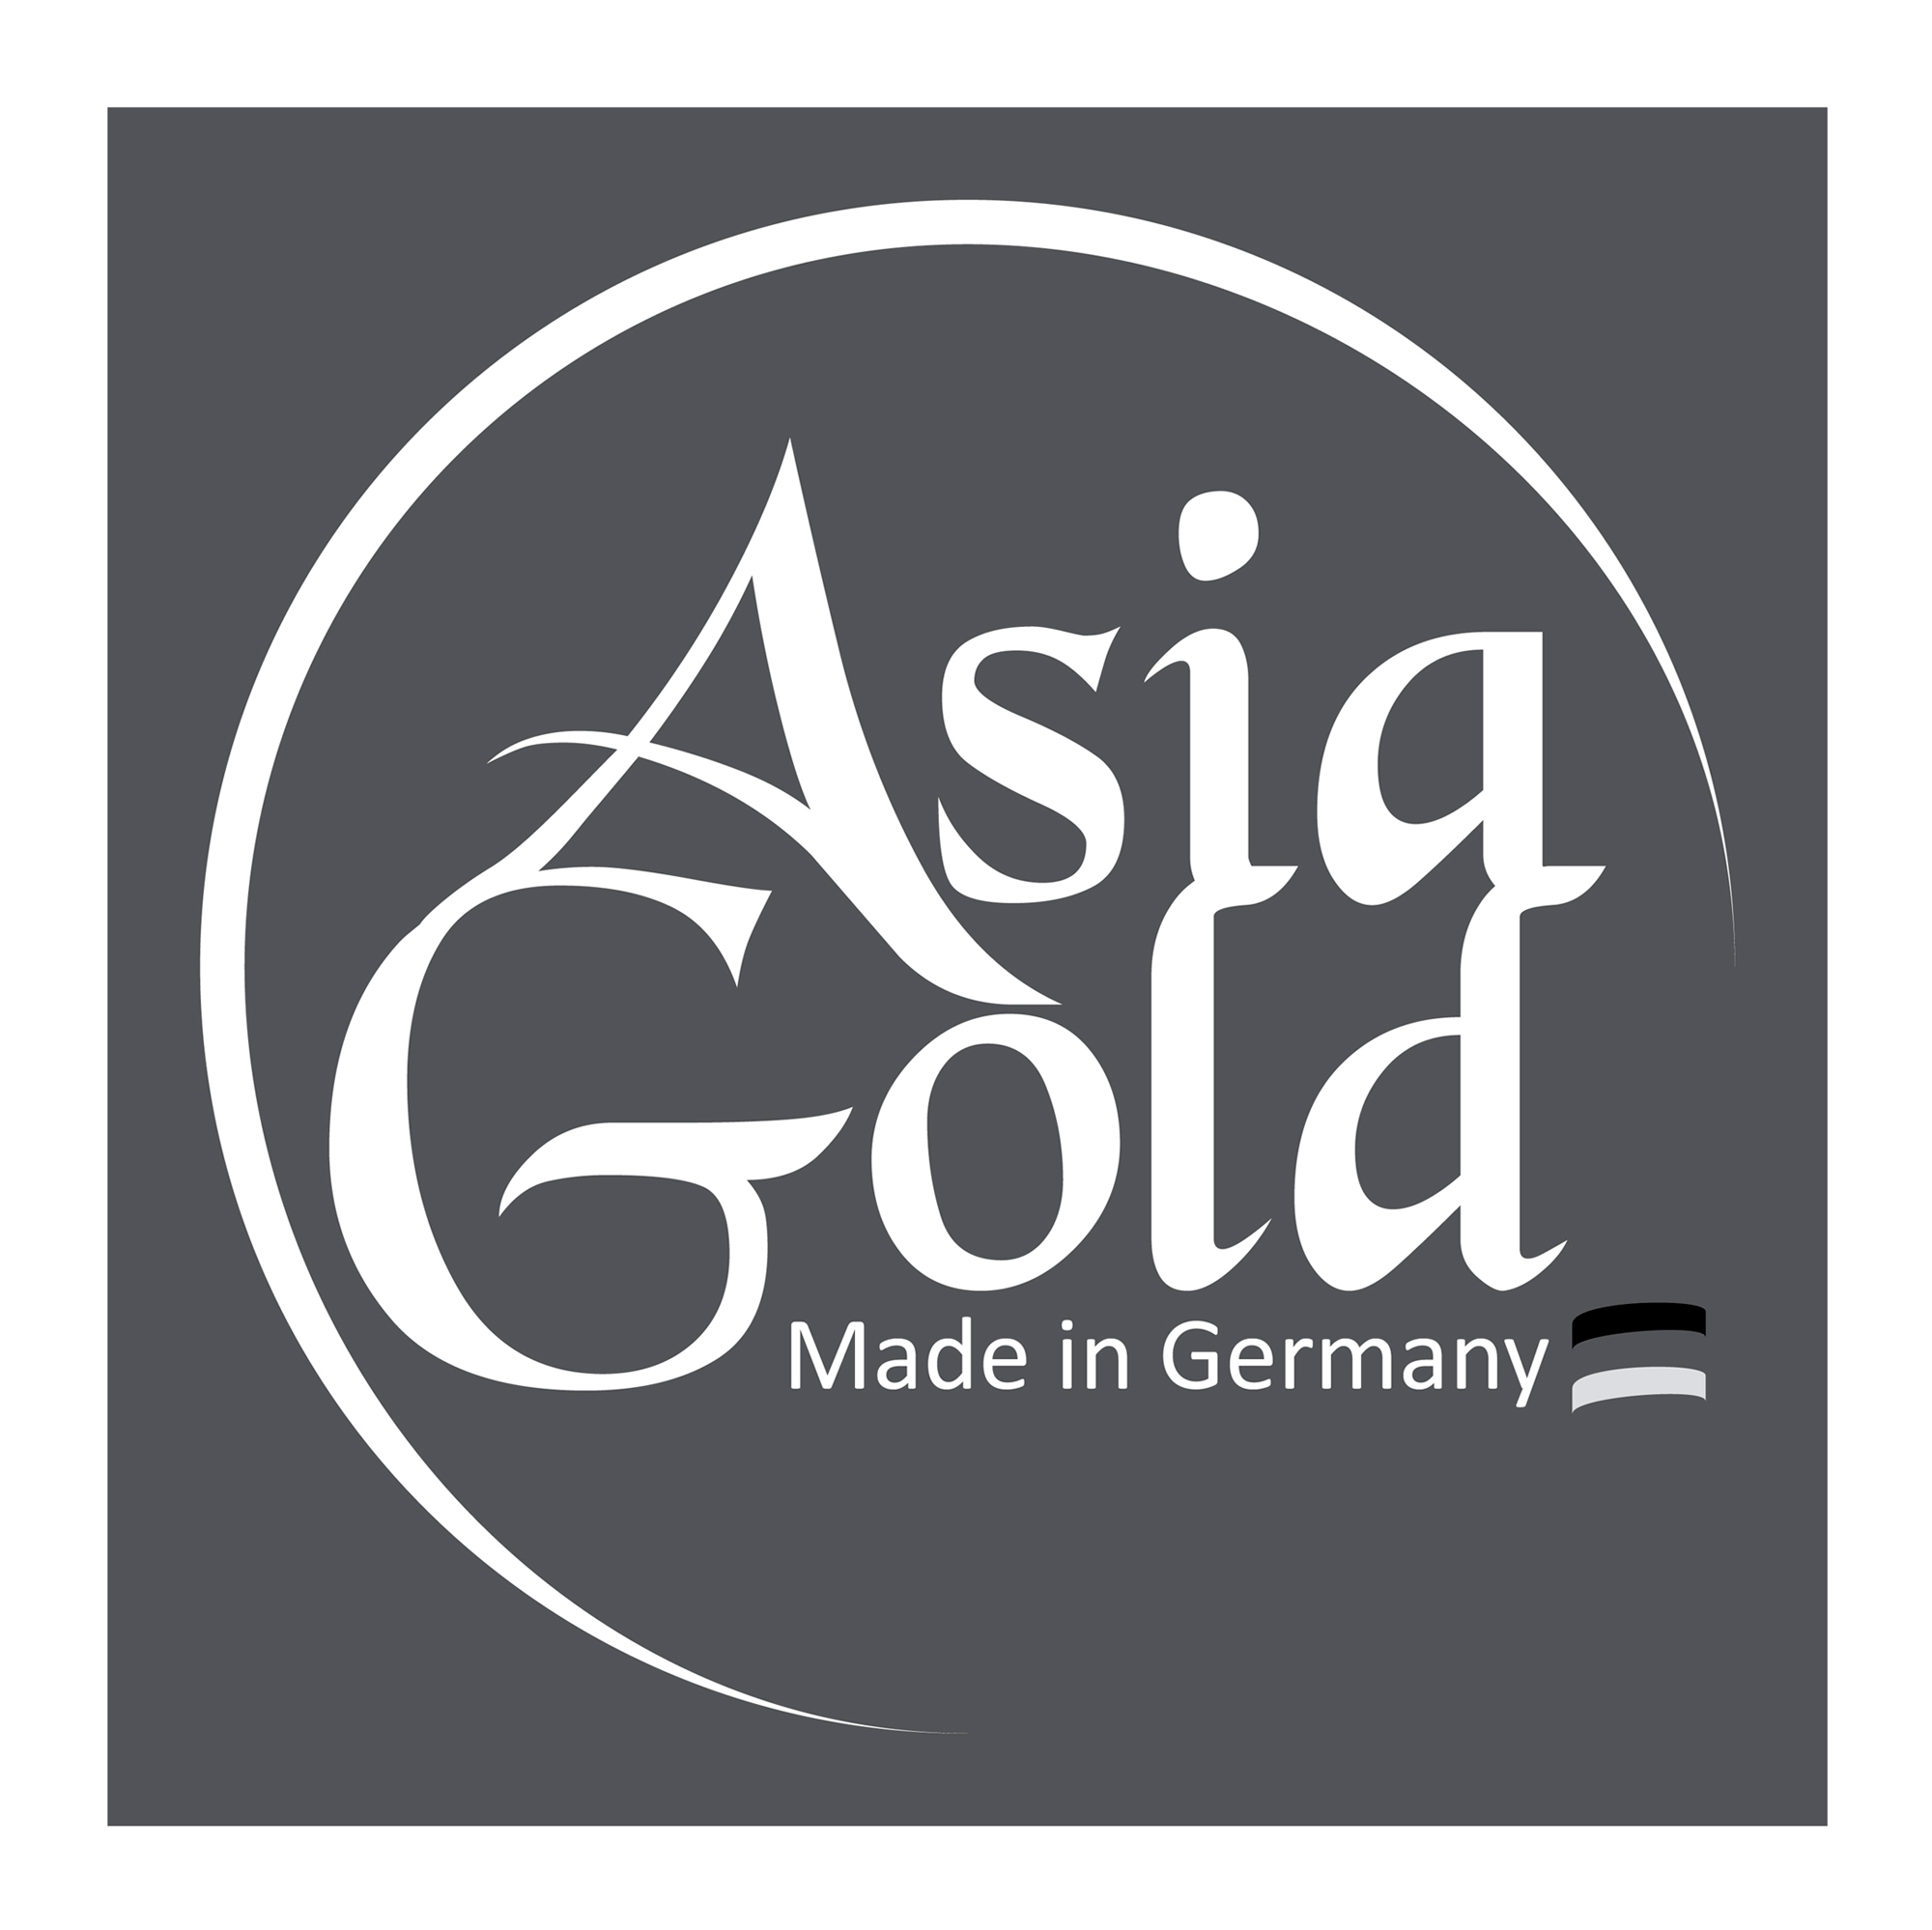 Asia Gold Made in Germany